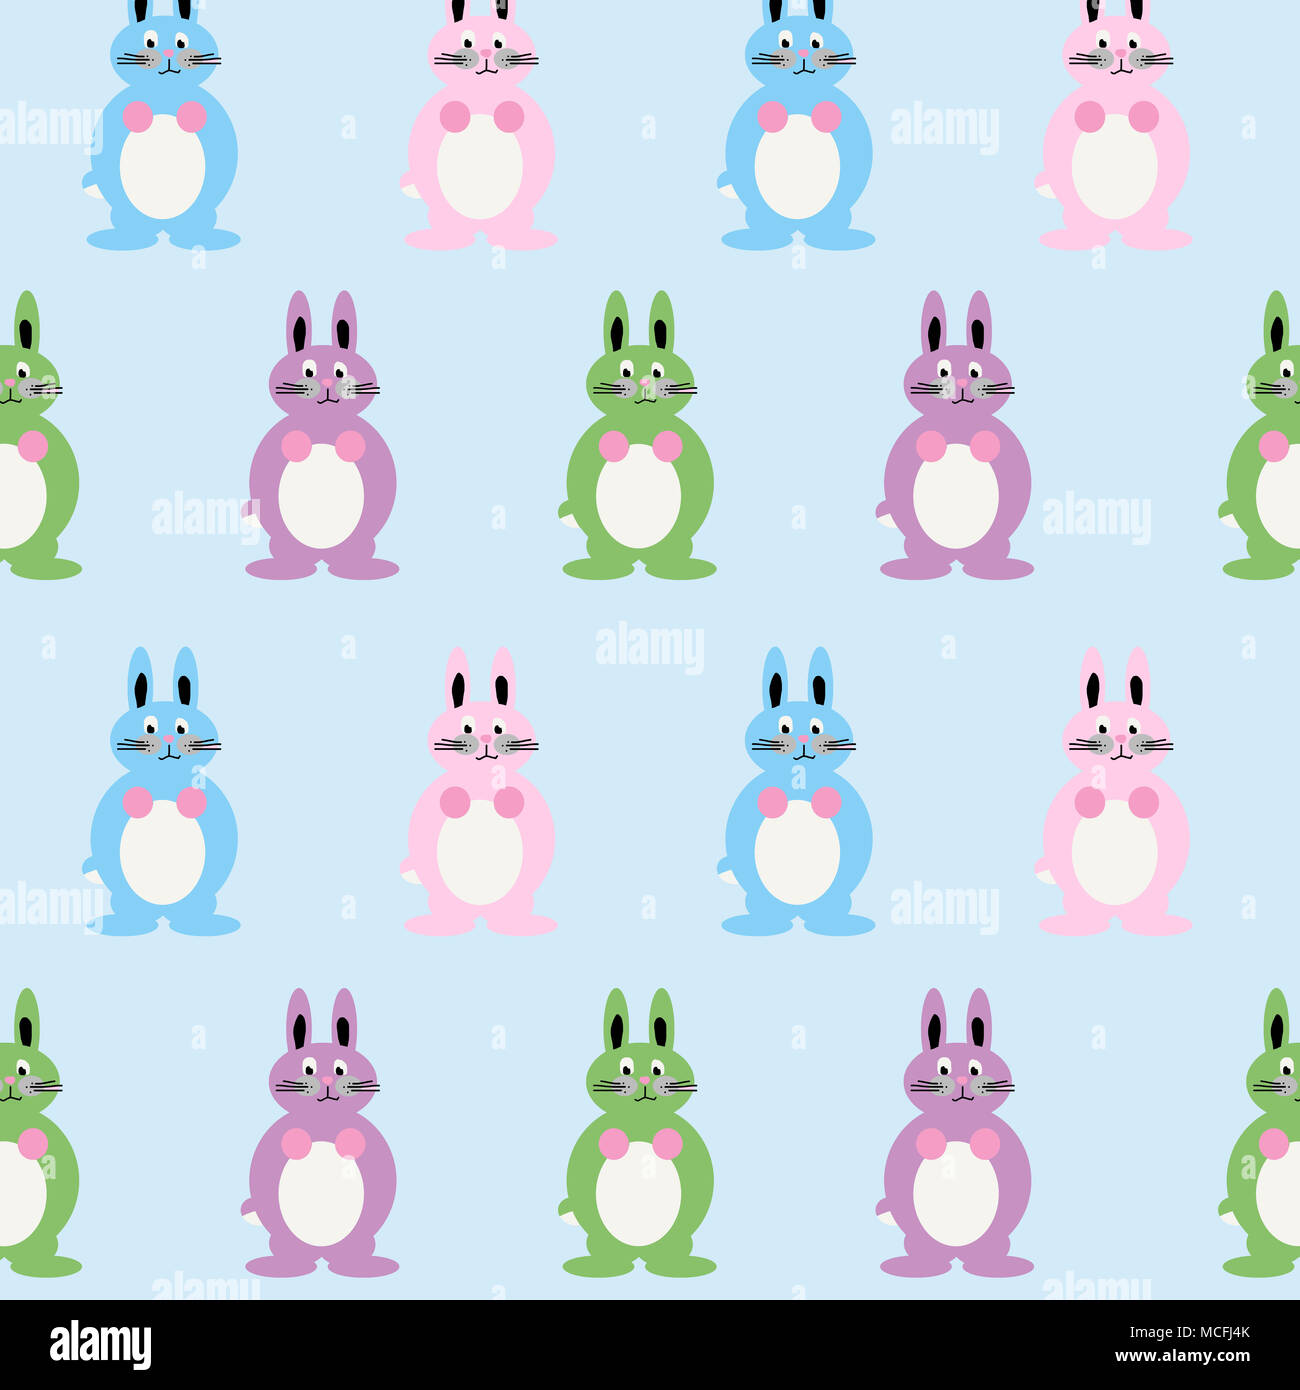 Cute and colorful bunny illustration including multiple pink, blue, lila and green baby rabbits. Lovely childlike drawing! - Stock Image